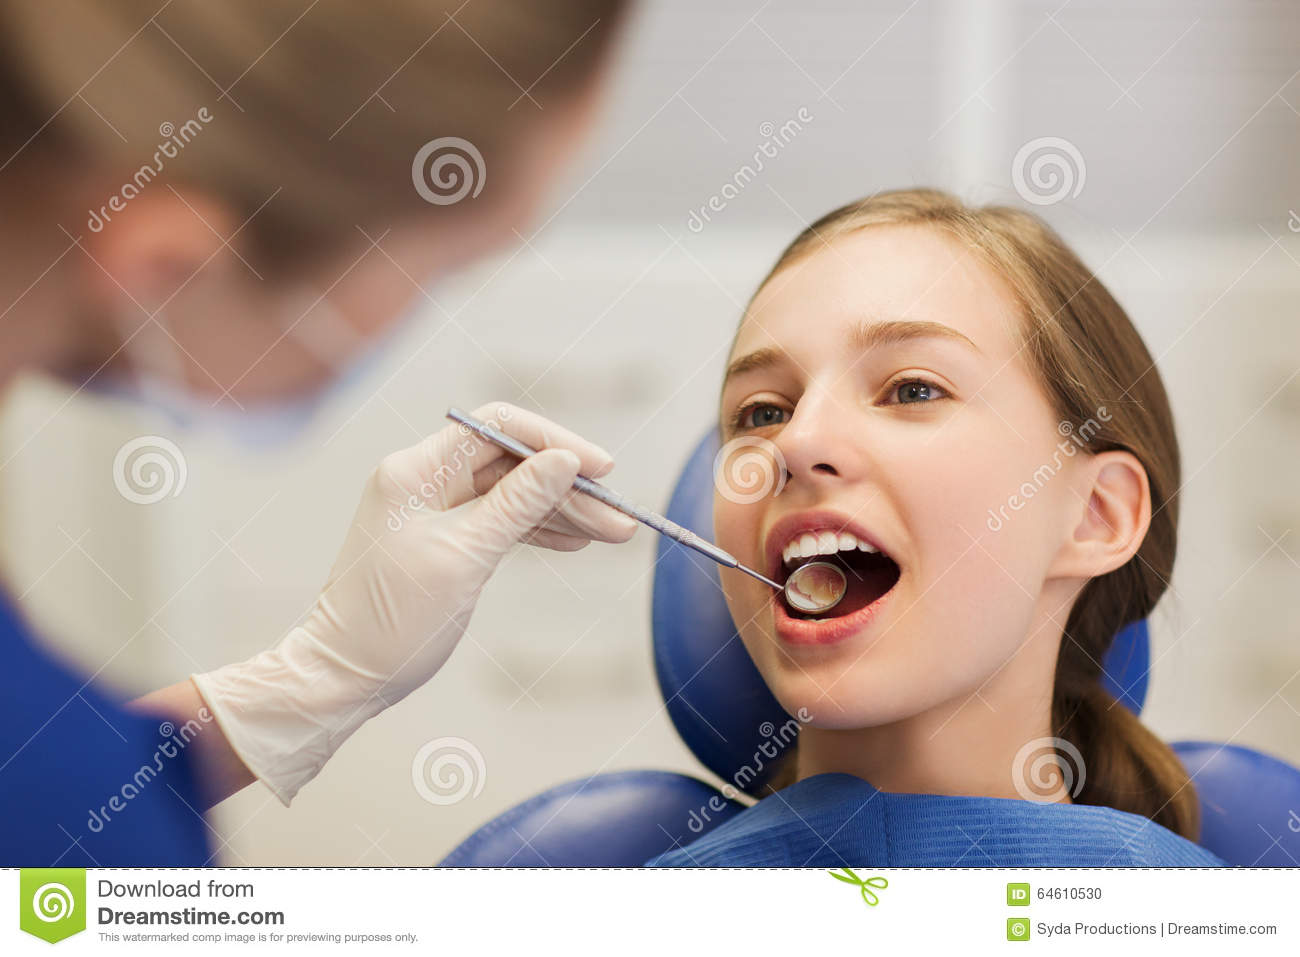 Female dentist checking patient girl teeth